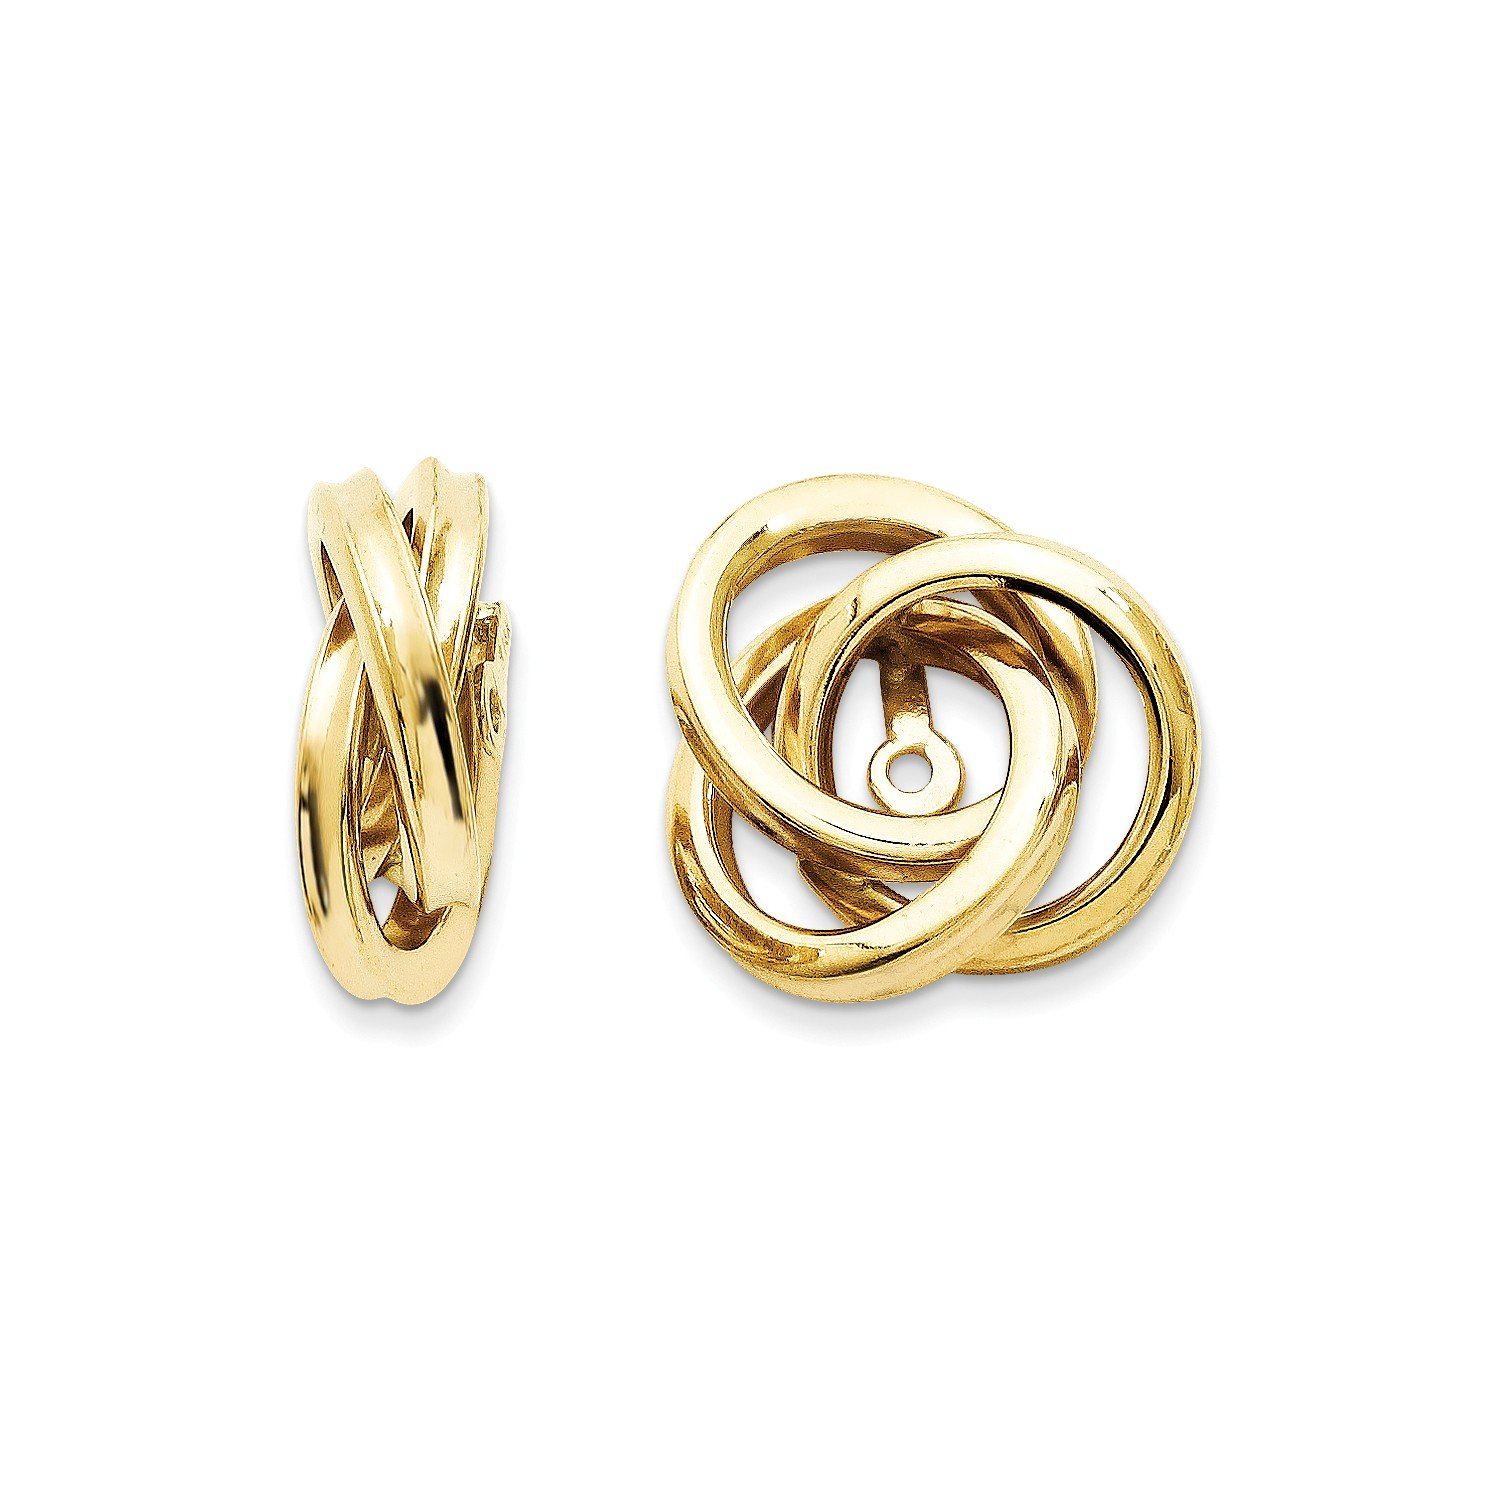 Roy Rose Jewelry 14K Yellow Gold Polished Love Knot Earring Jackets 15mm length